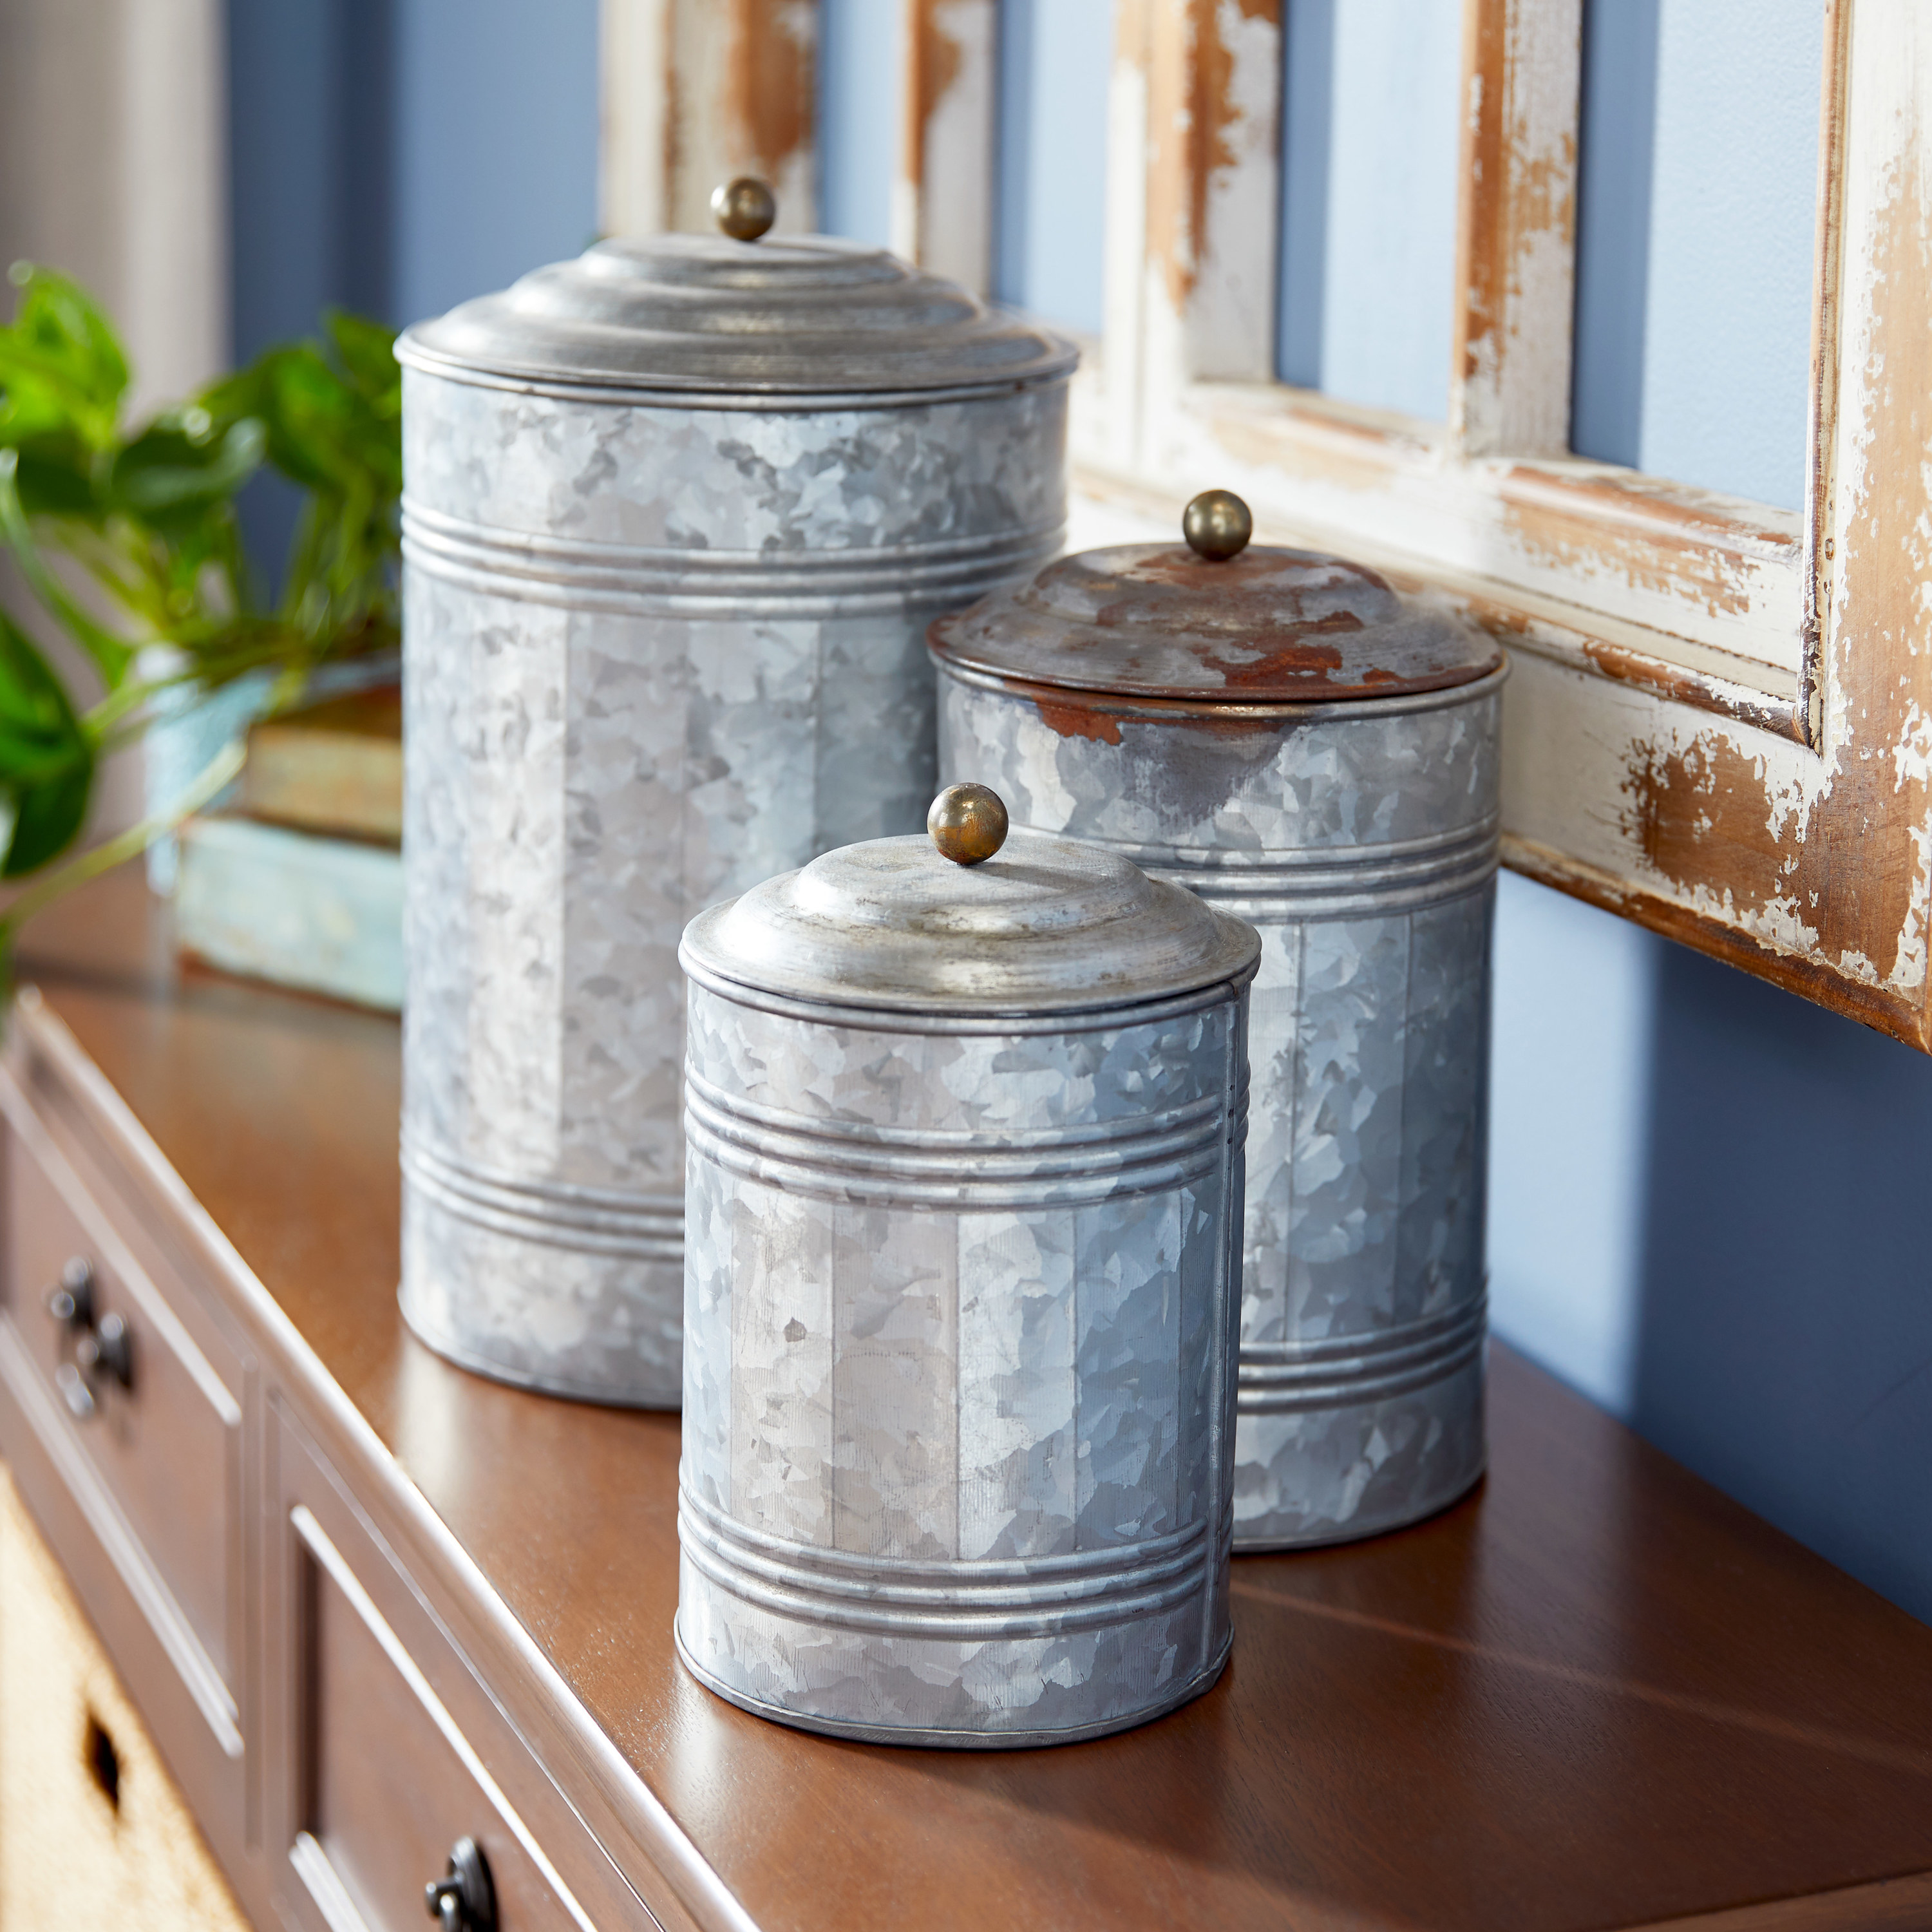 Three different sized, weathered-looking galvanized metal jars